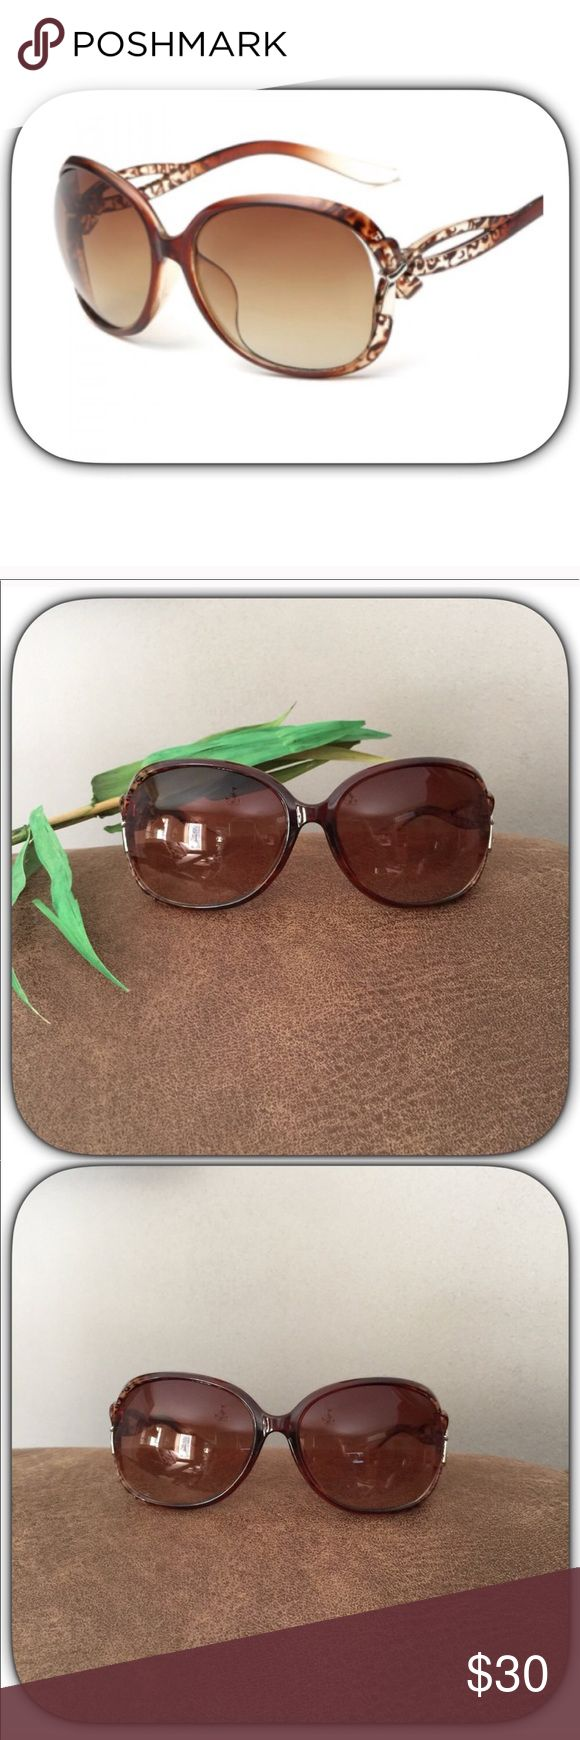 NWT Gorgeous Brown Tortoise Style UV Sunglasses These are really super cute fashion sunglasses! Everything looks so pretty and sunny bright looking through them! They are up protected! Boutique Accessories Glasses